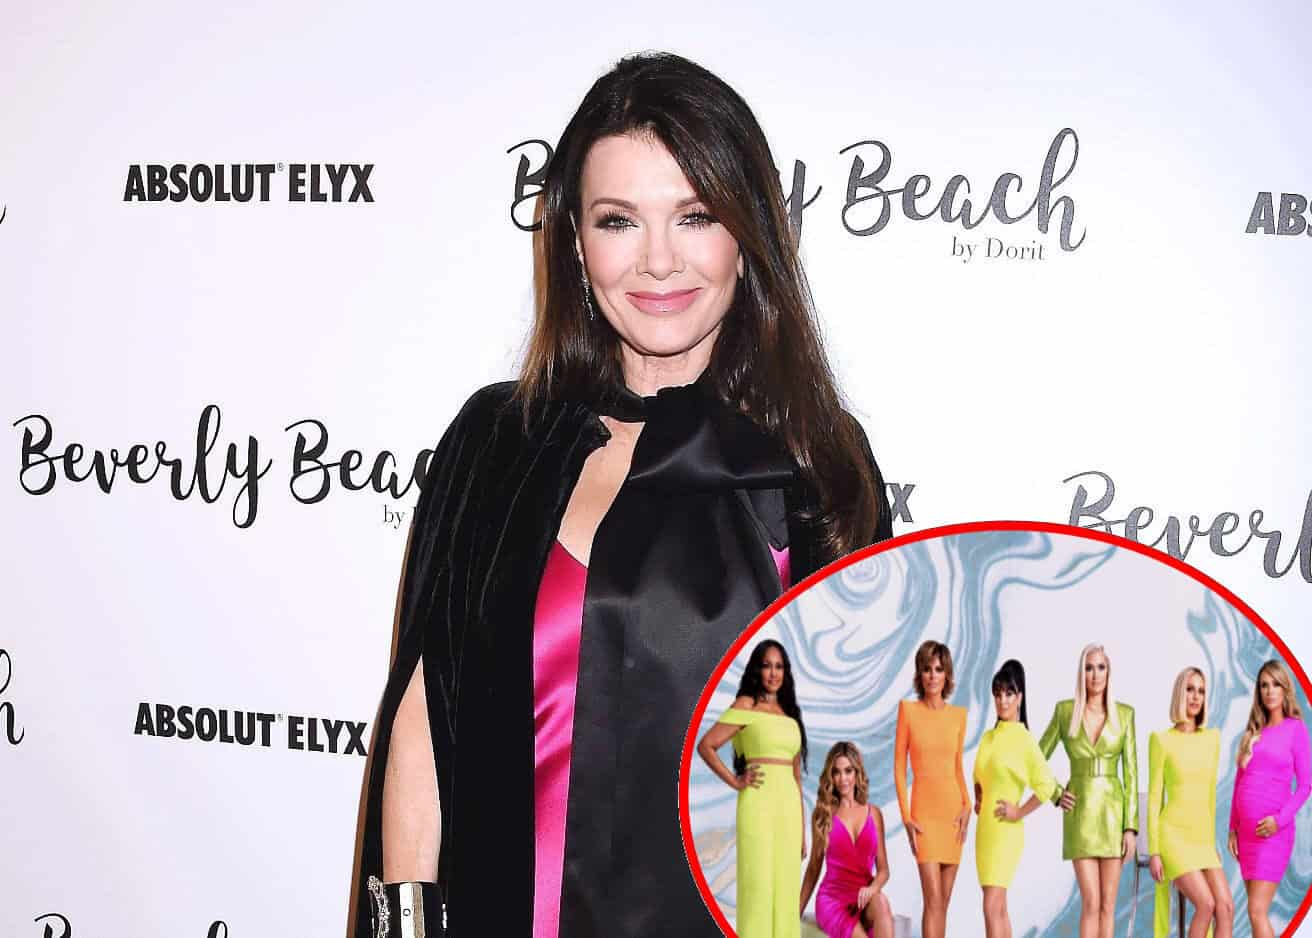 RHOBH Alum Lisa Vanderpump Talks Run-in With Kyle Richards, Lisa Rinna's Editing Requests, and Admits She Hasn't Written Off a Return, Plus Believes Cast is Jealous of Her Opportunities and Success